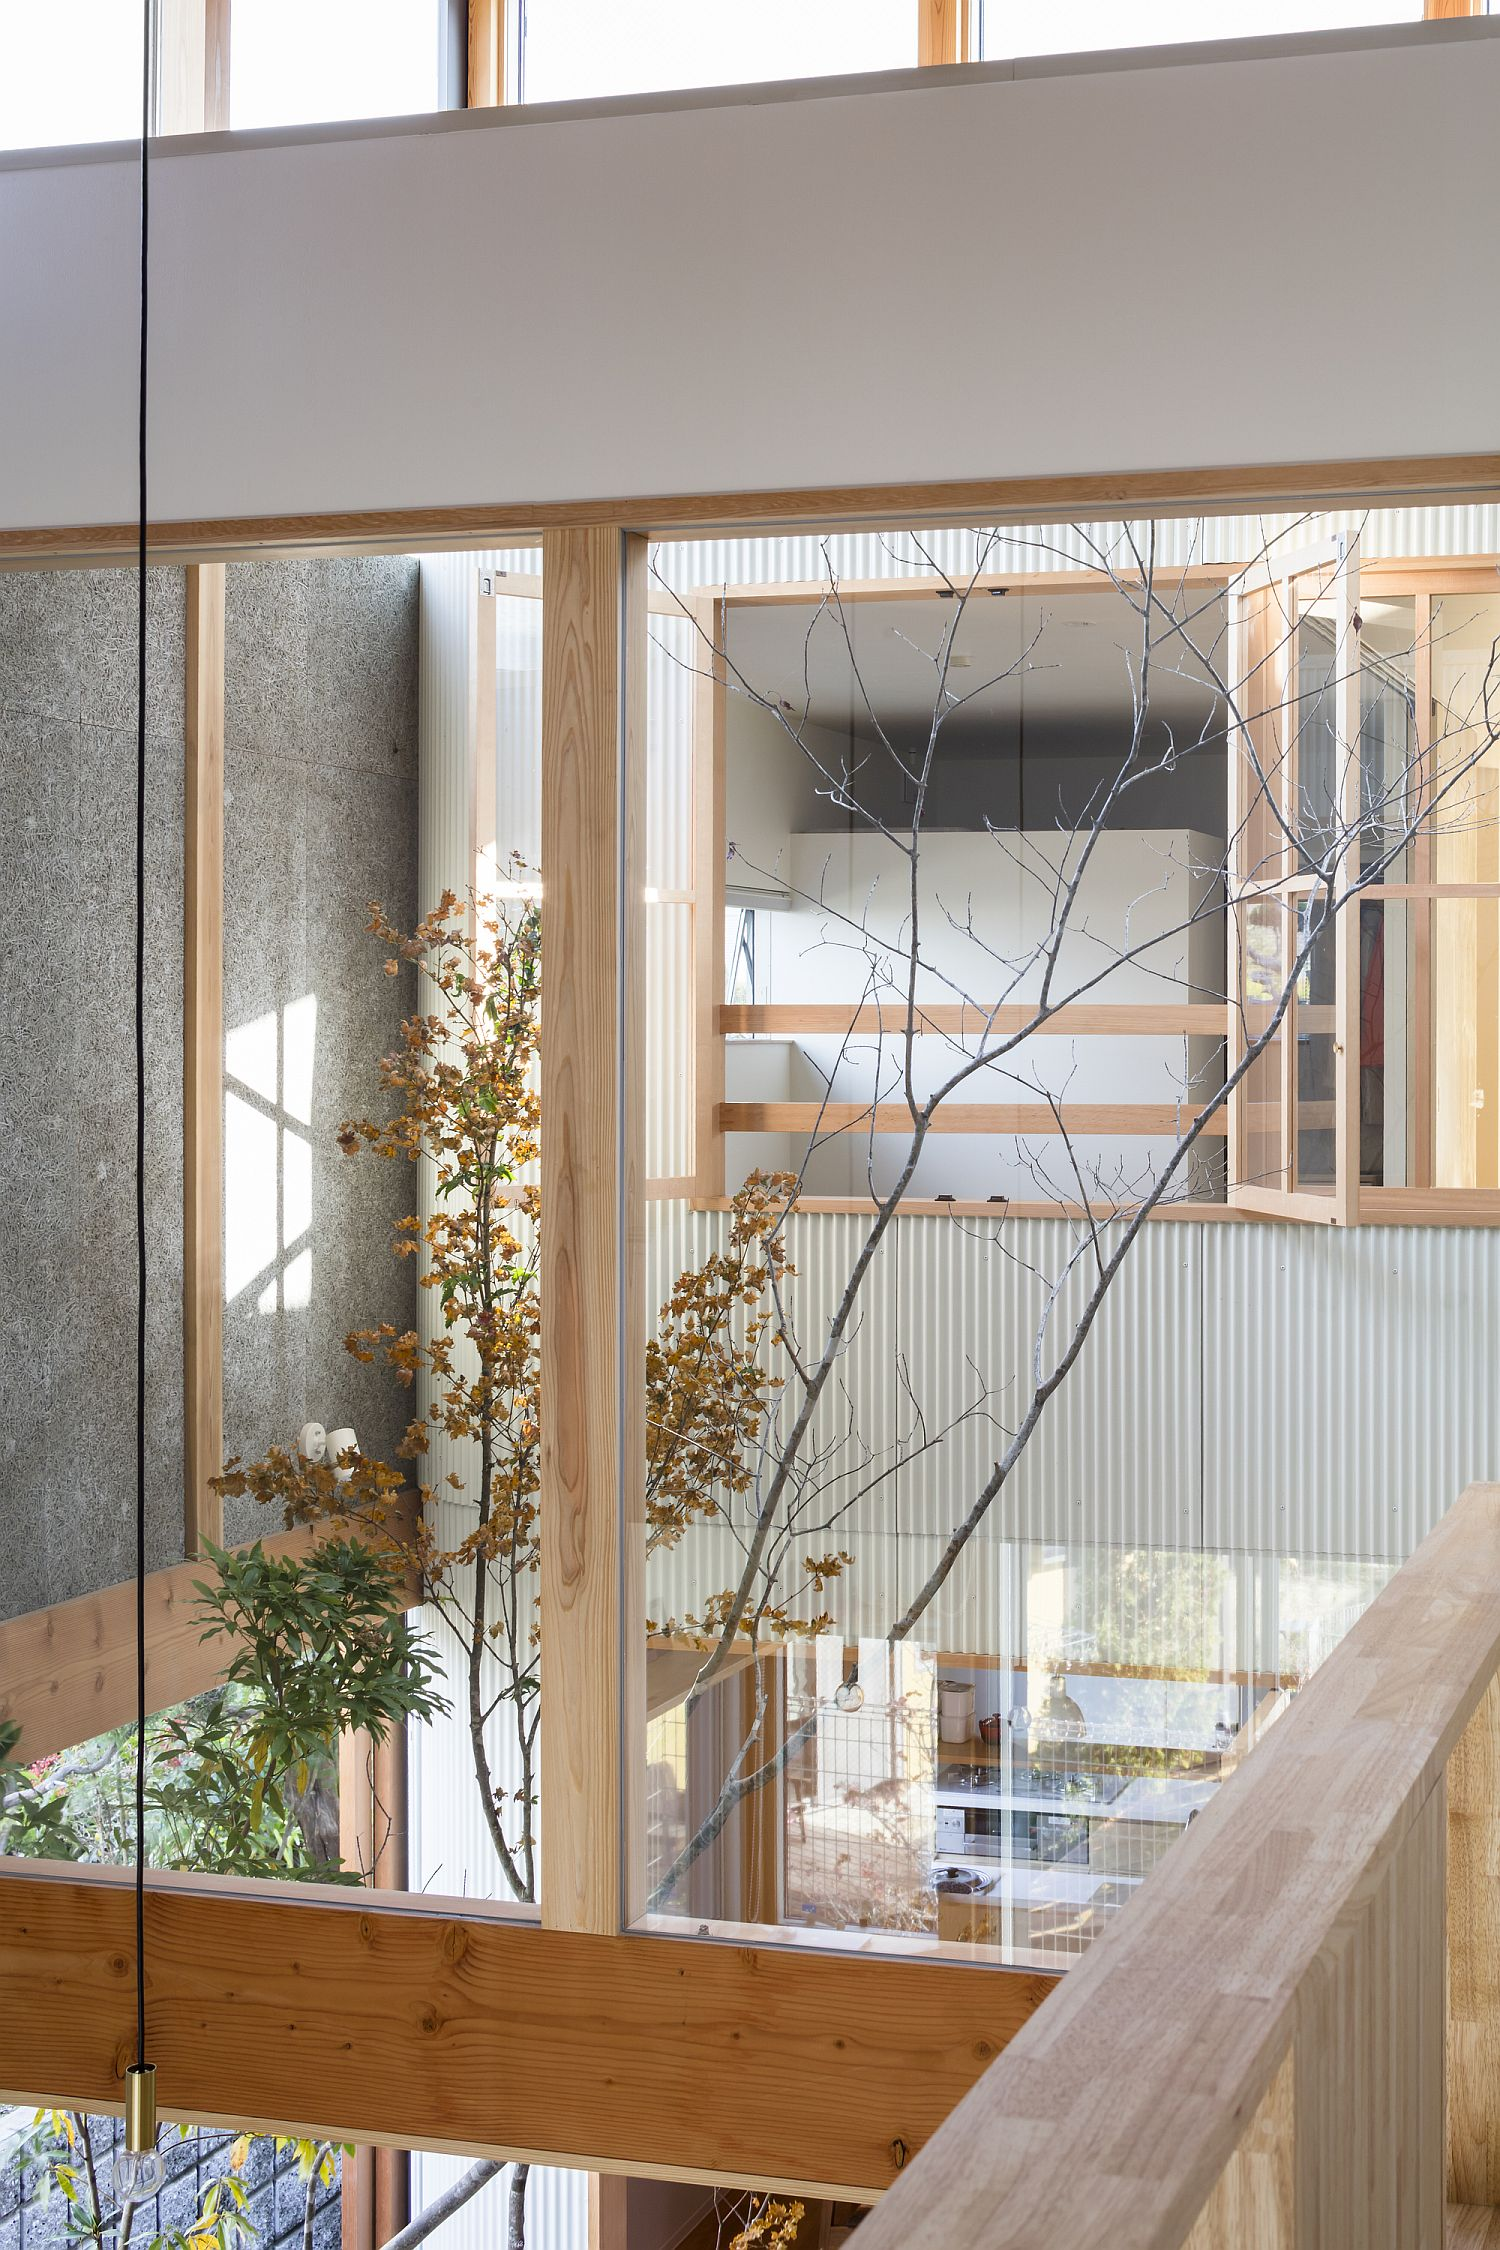 White, wood and glass create a cool interior inside the Japanese home